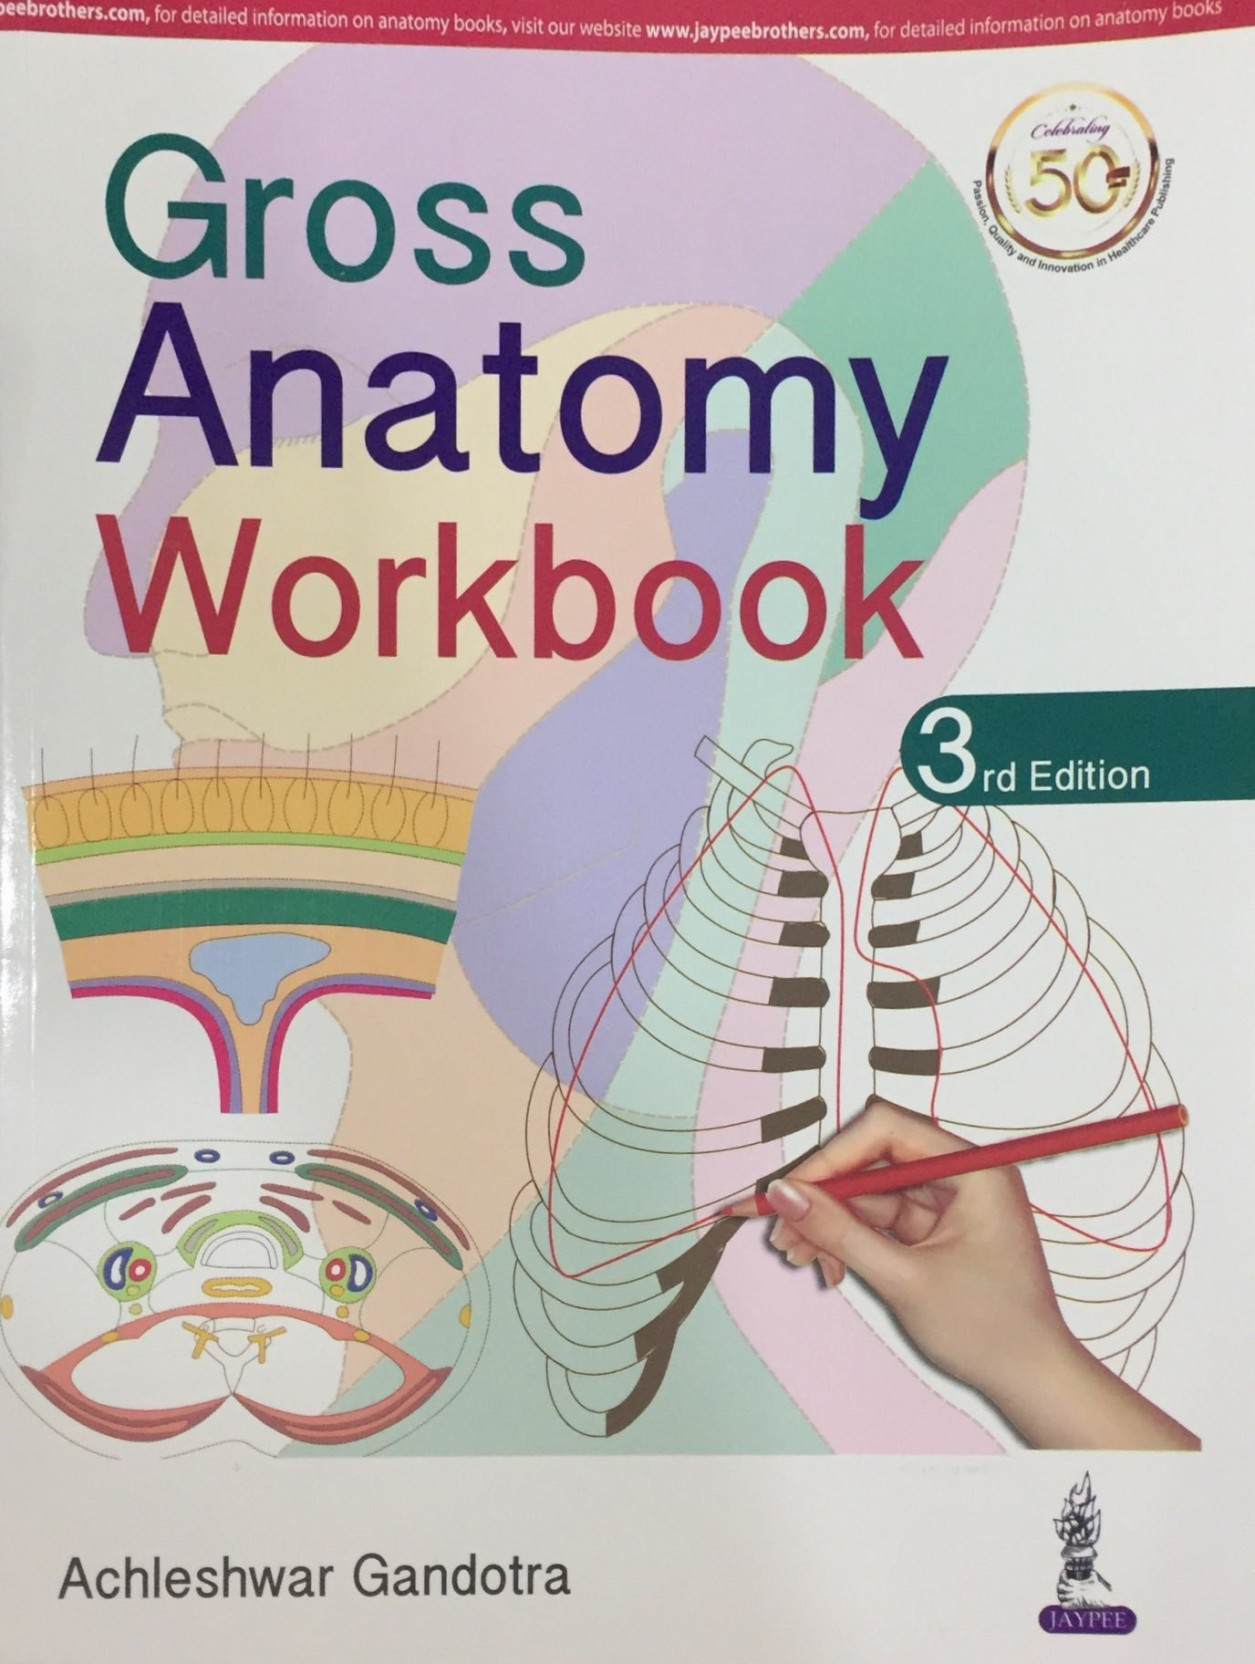 Gross Anatomy Workbook Buy Gross Anatomy Workbook By Achleshwar